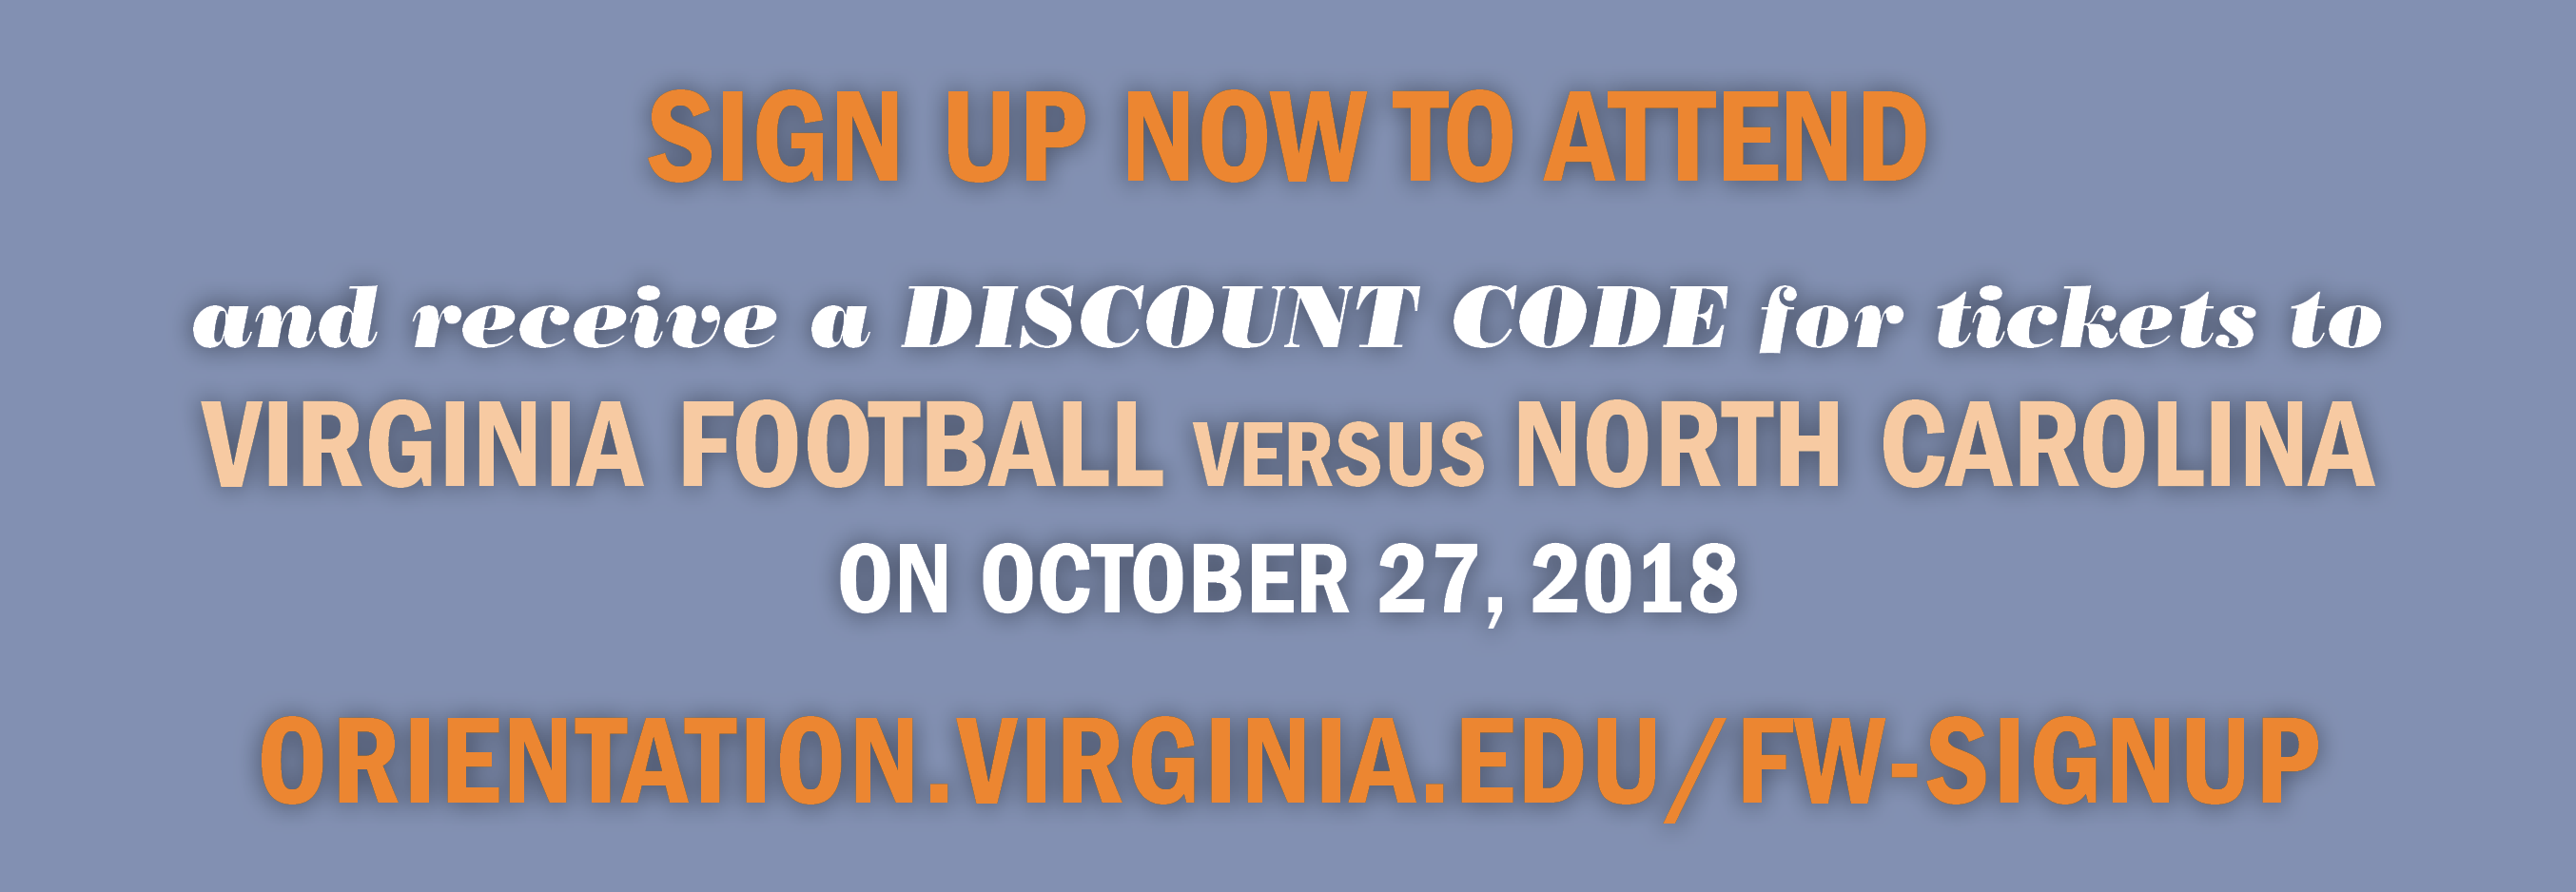 Sign up now to attend, and receive a discount code for tickets to Virginia Football versus North Carolina on October 27, 2018! Go to orientation.virginia.edu/fw-signup.